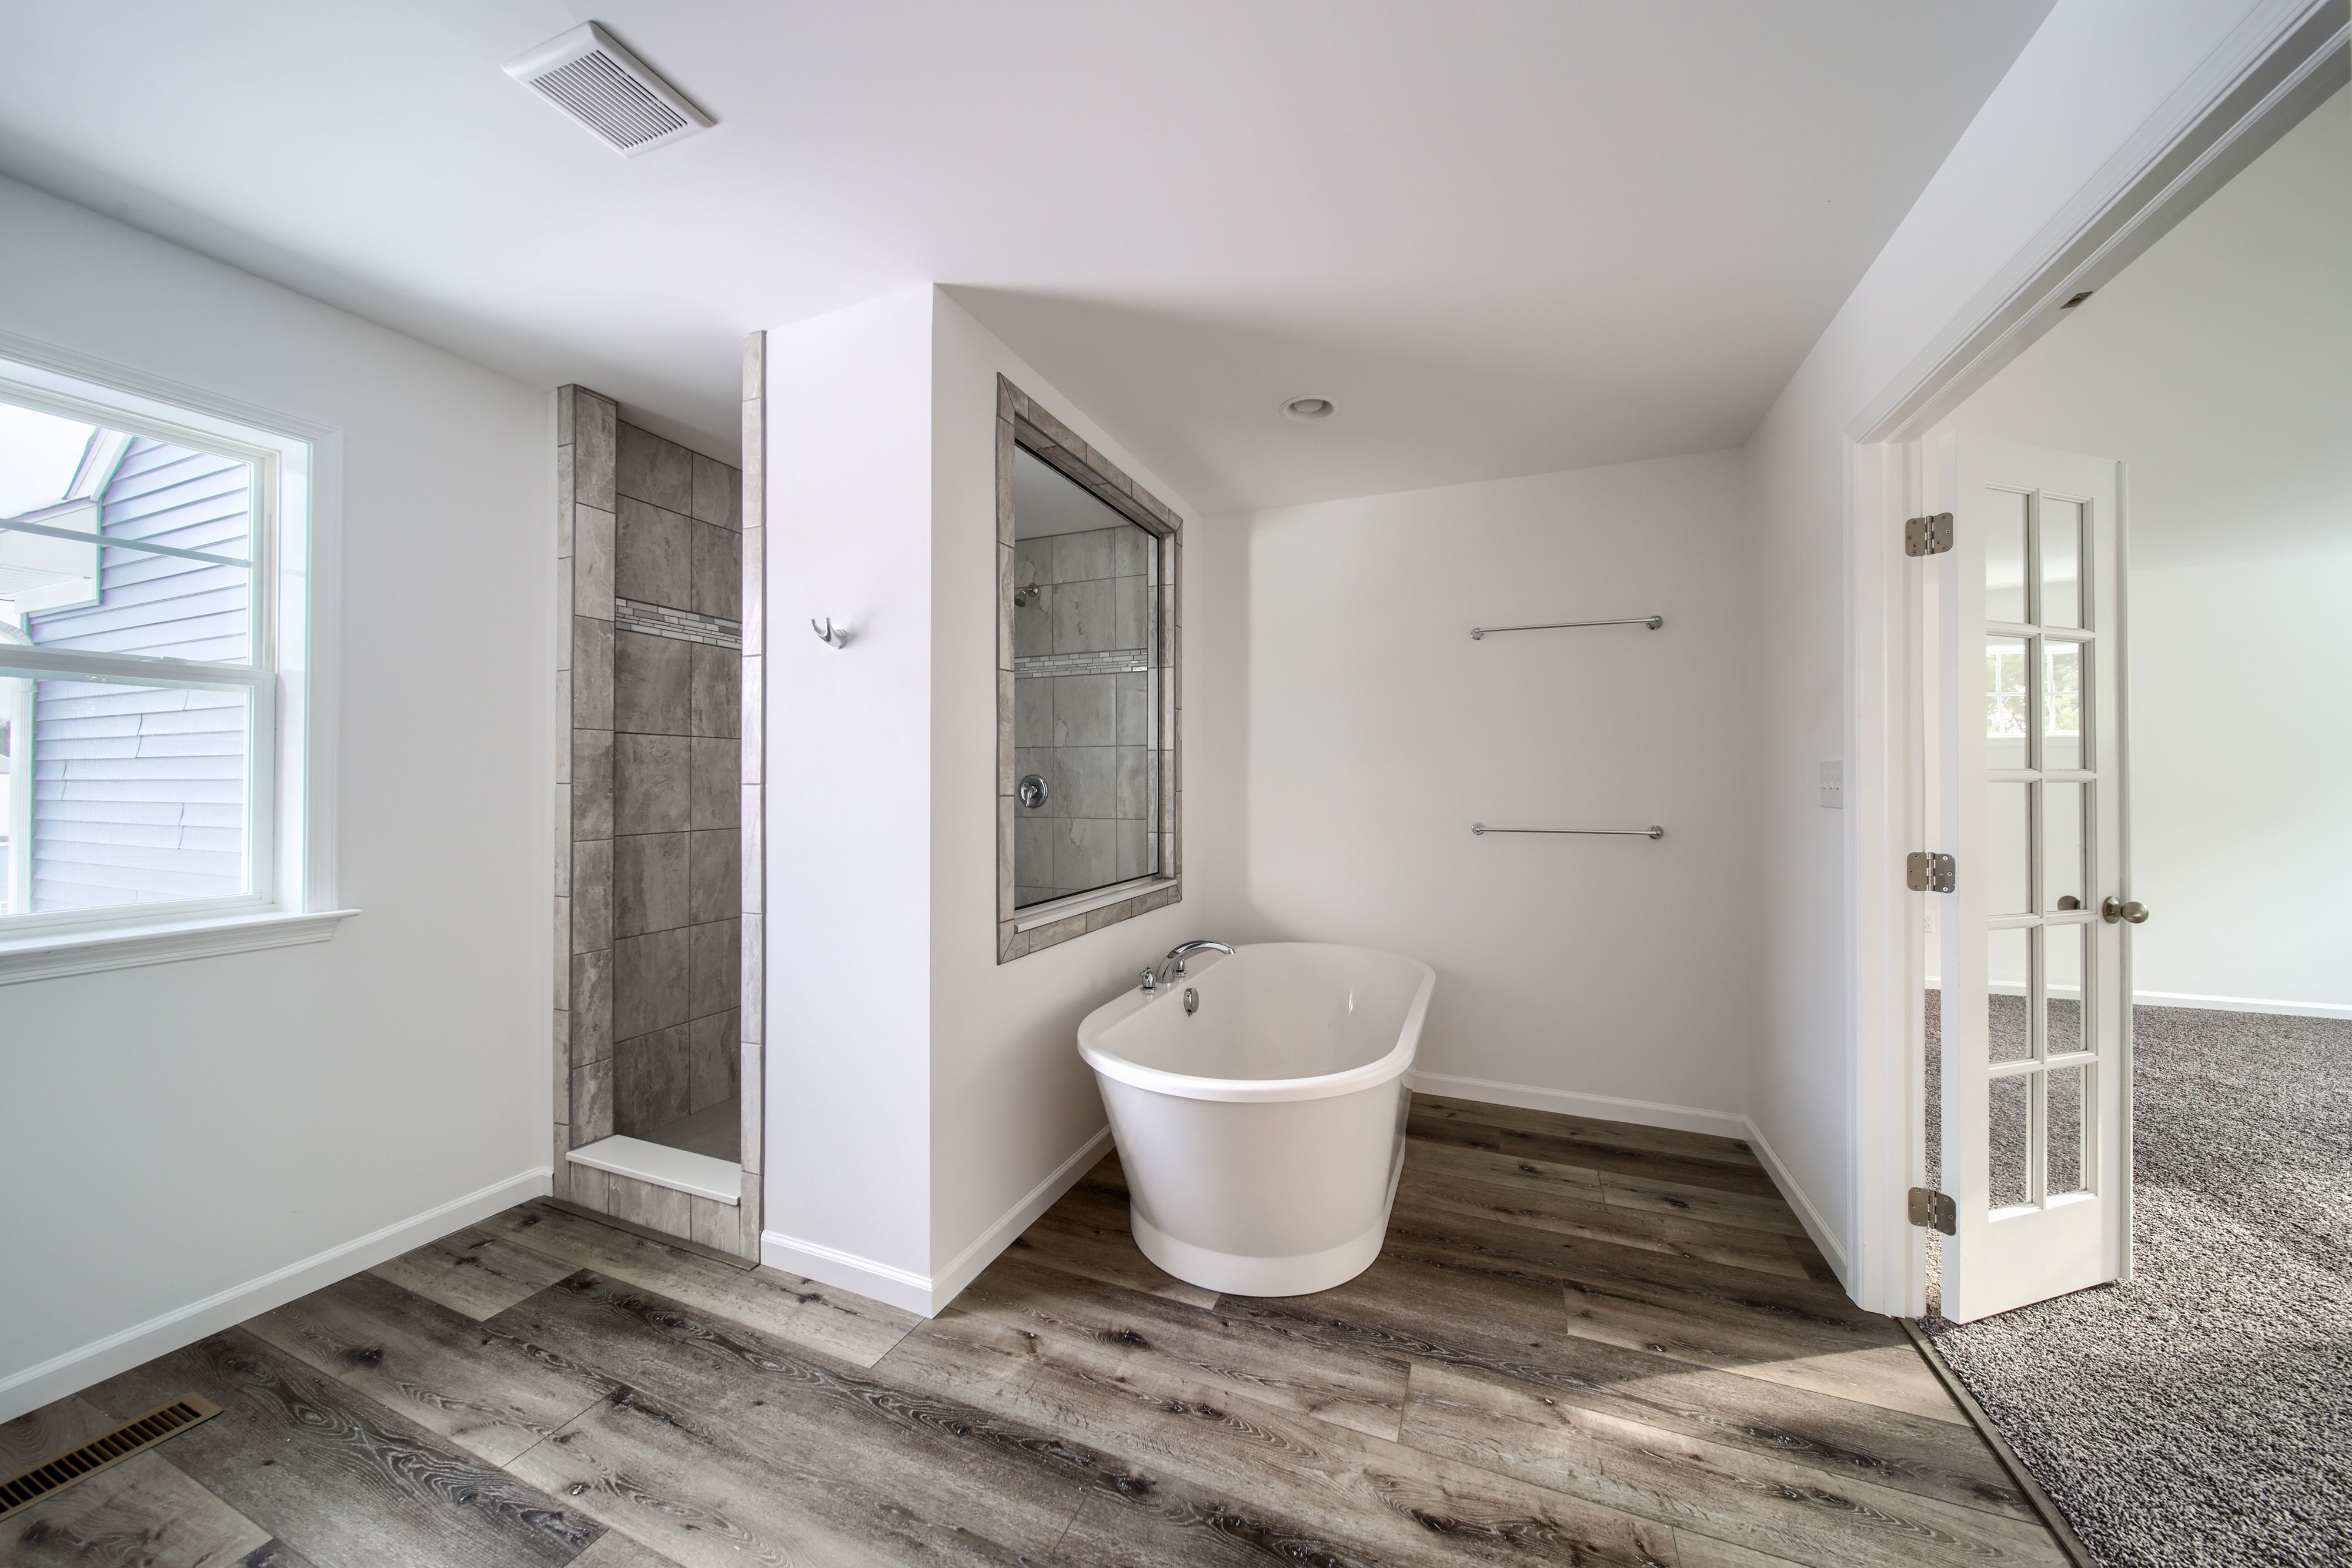 Bathroom featured in the Addison Heritage By Keystone Custom Homes in Harrisburg, PA